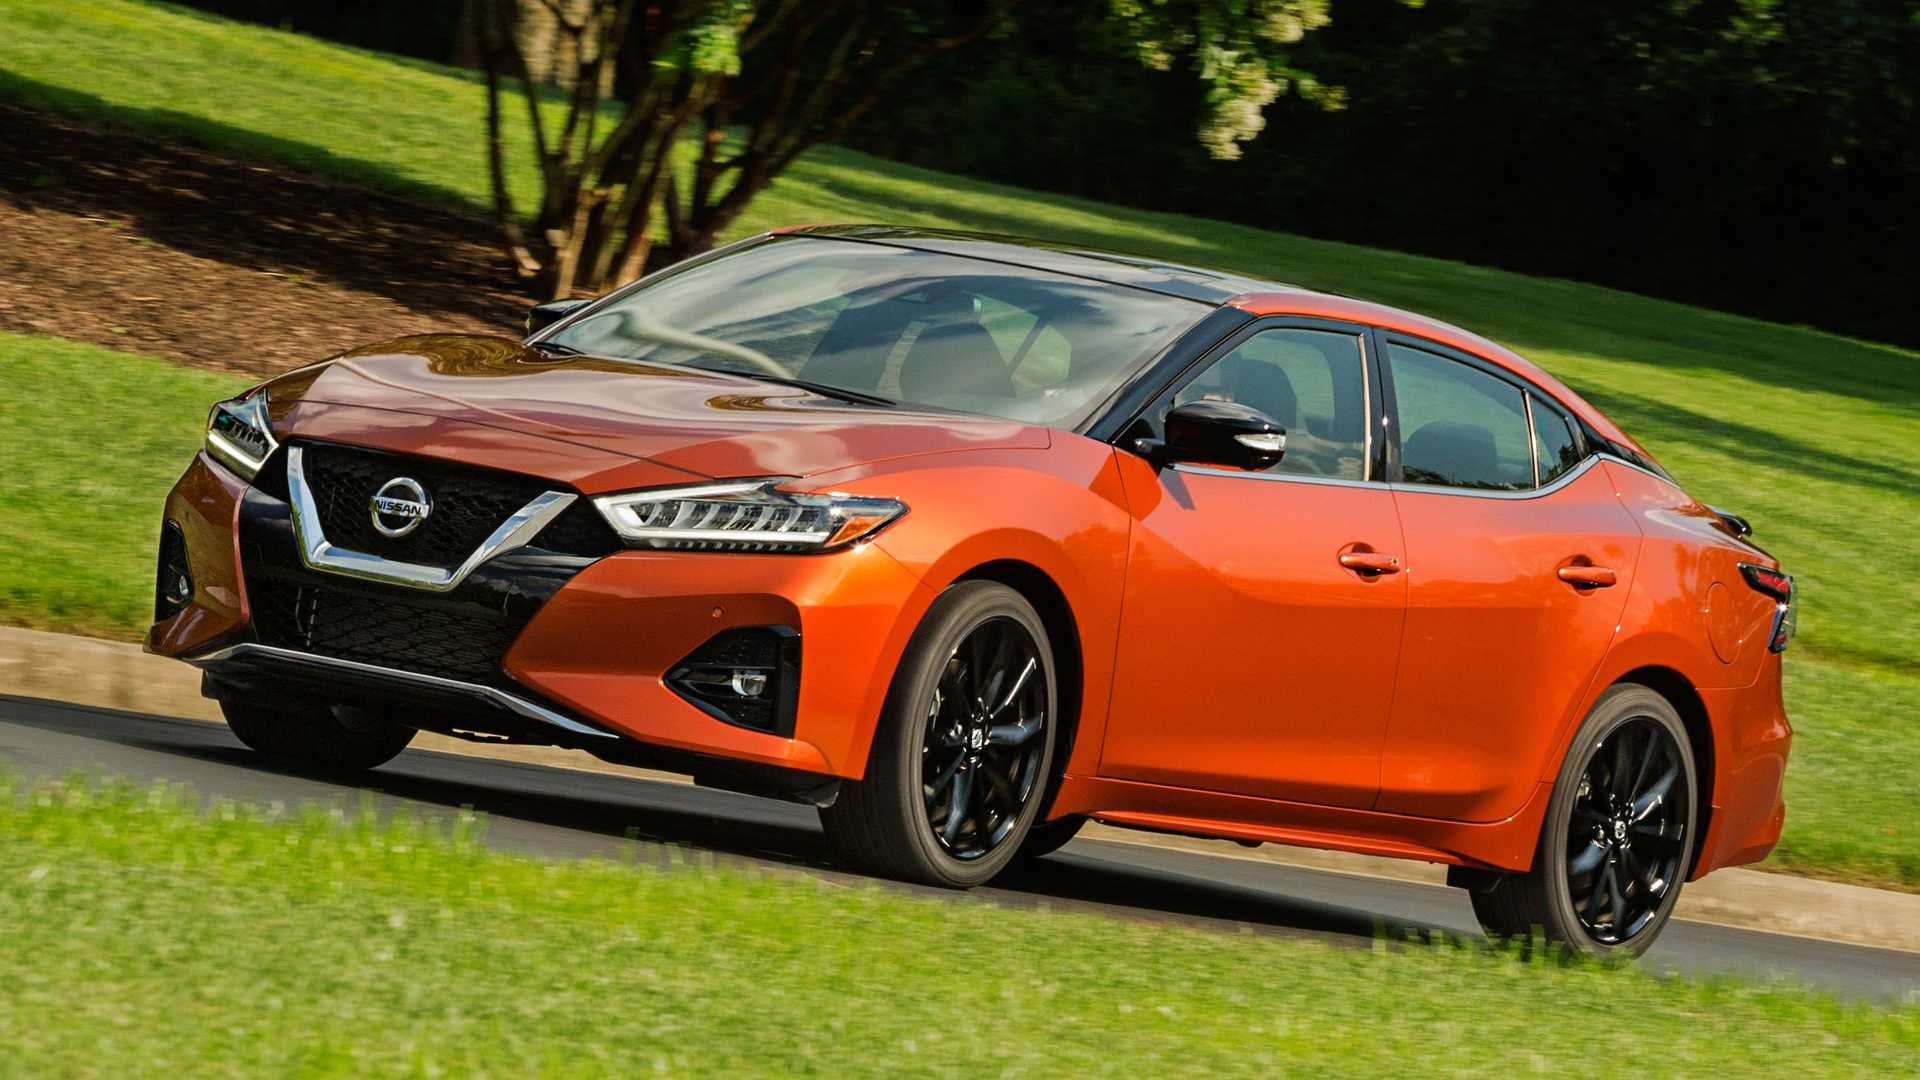 Nissan Maxima To Be Replaced By An EV In 4: Report